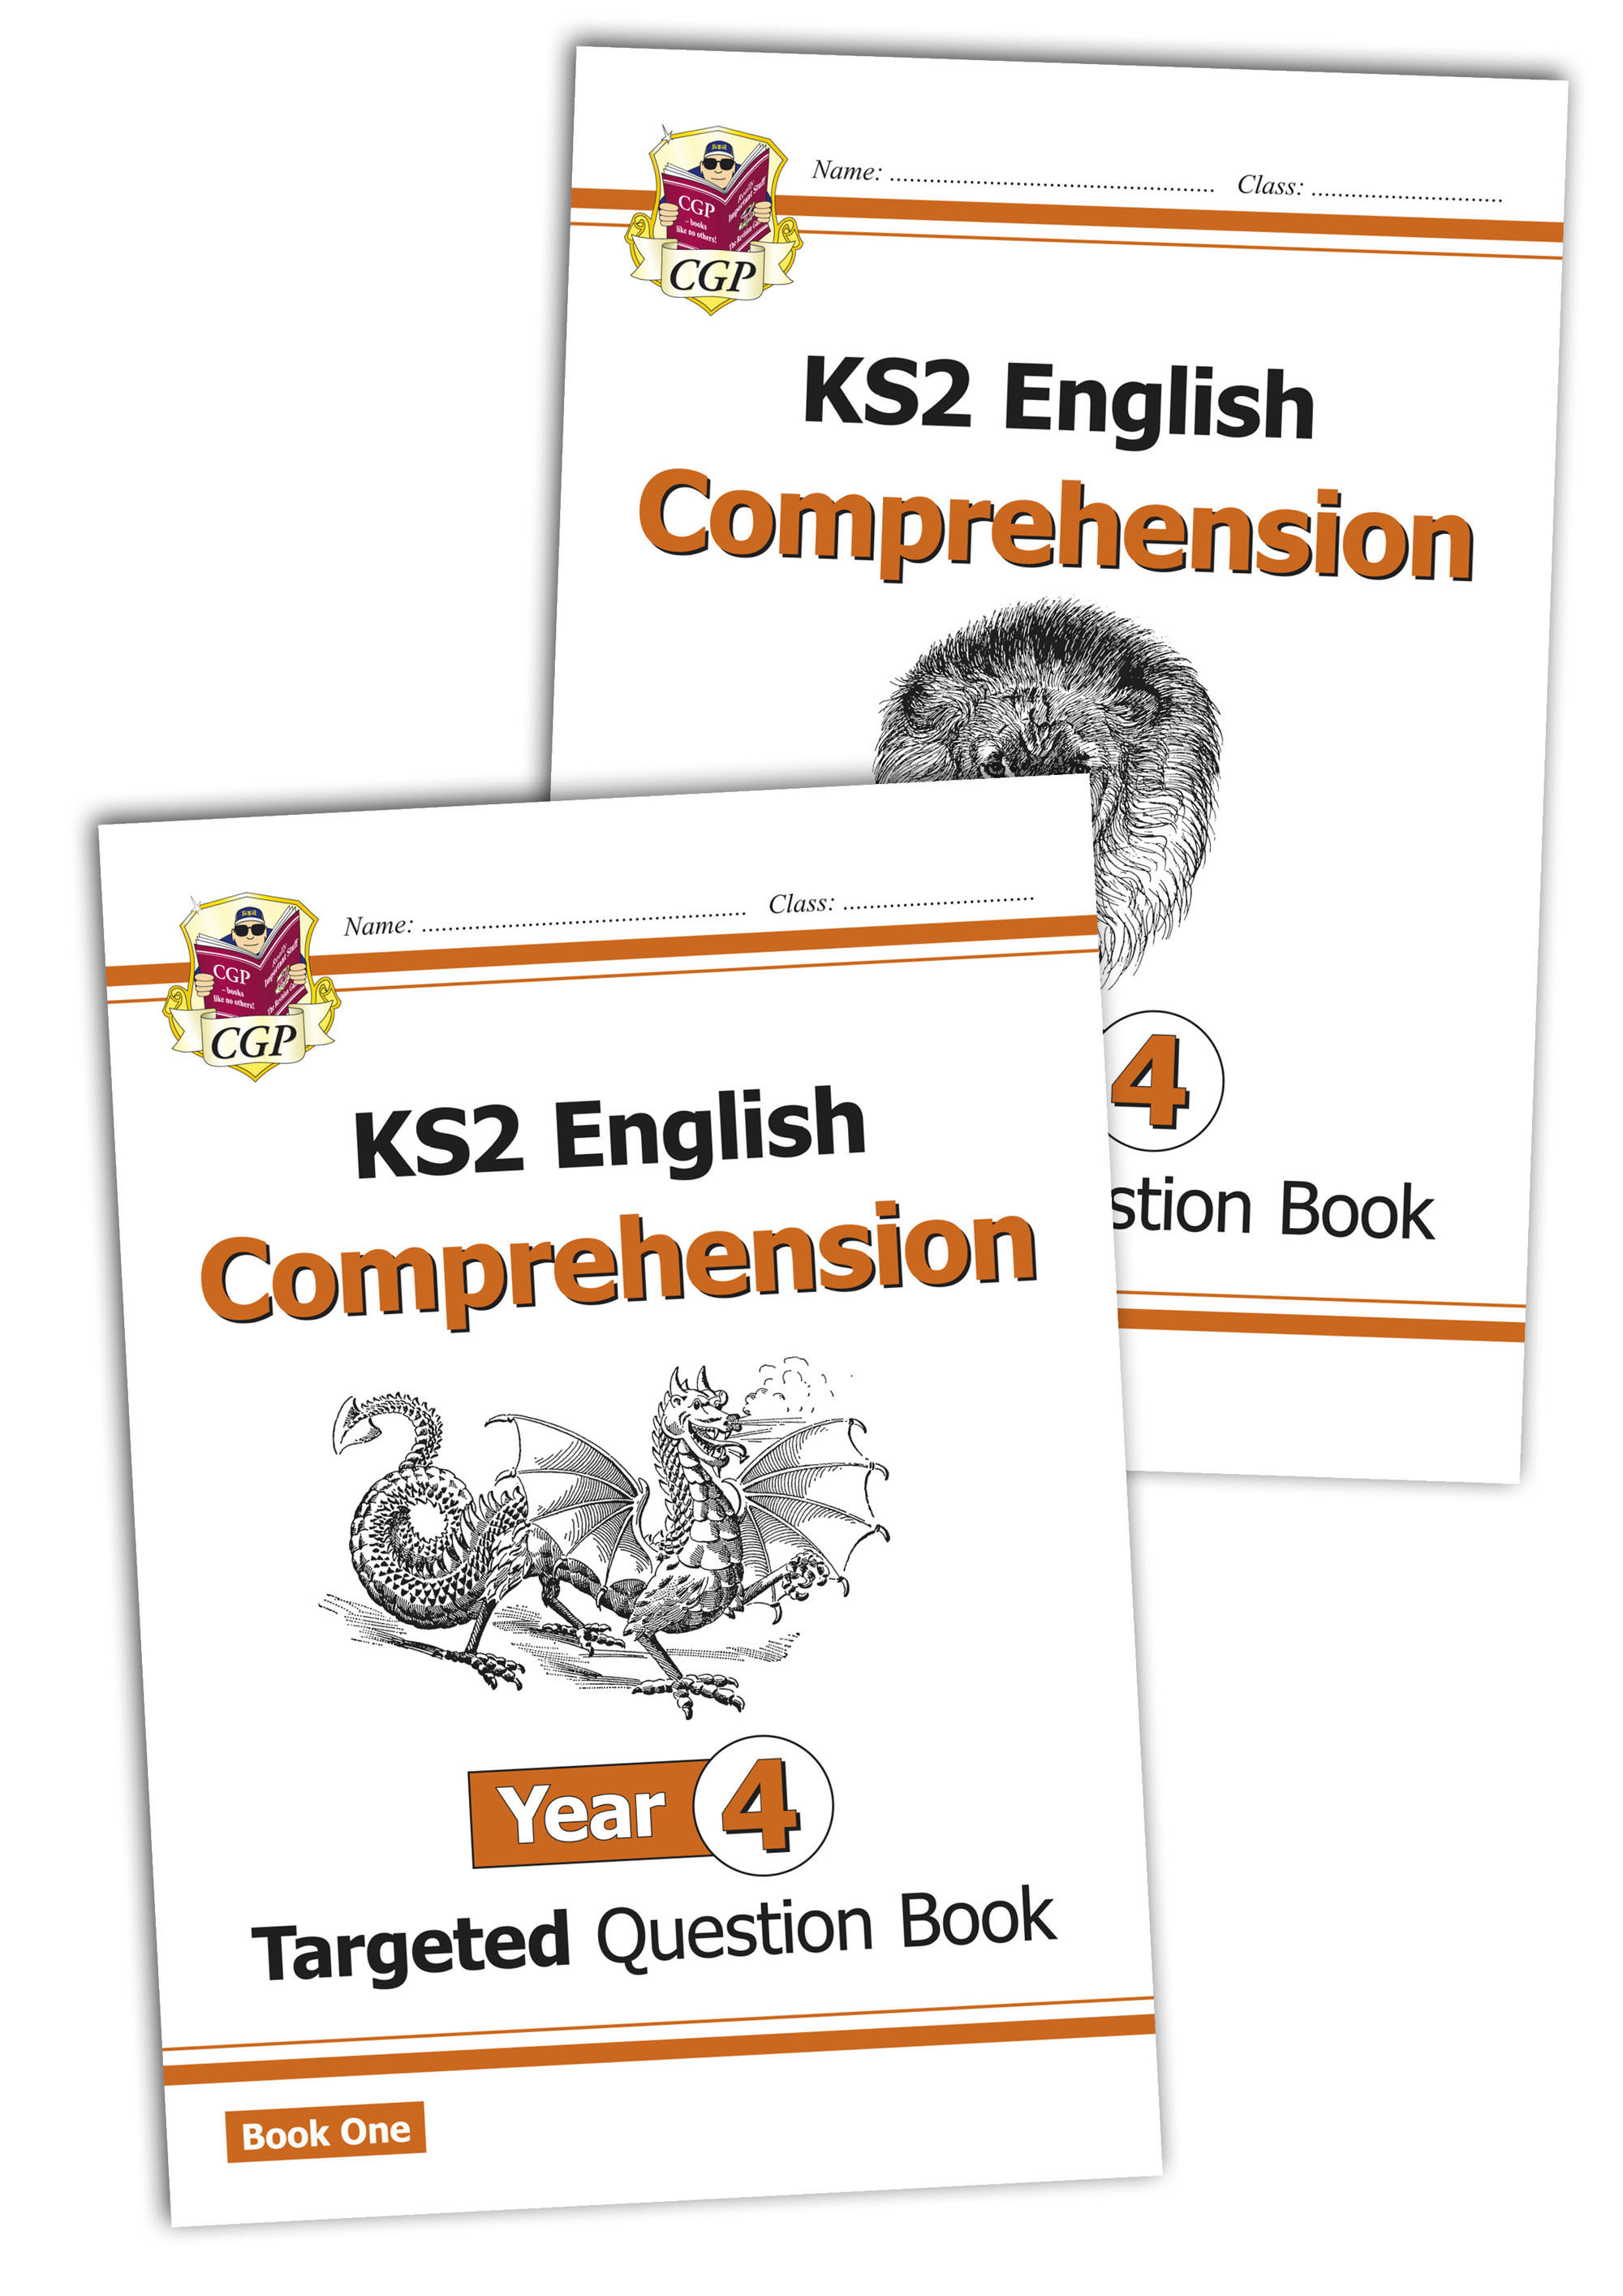 E4CWB21 - New KS2 English Targeted Question Book: Year 4 Comprehension - Book 1 & 2 Bundle